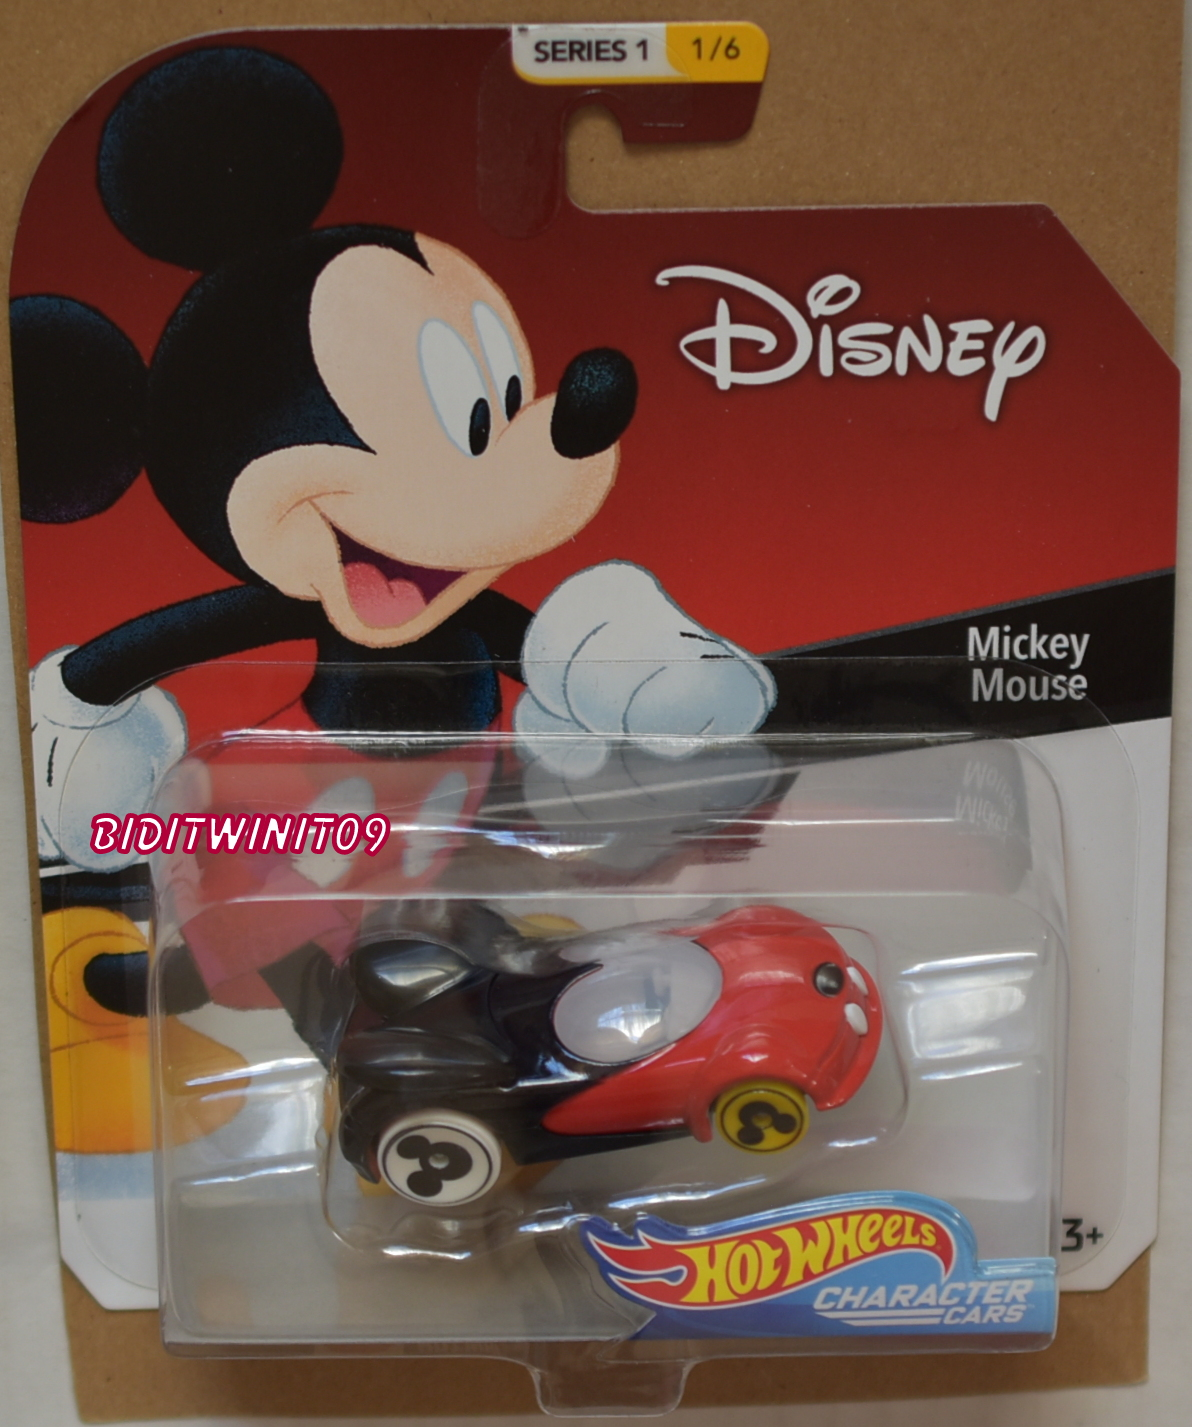 HOT WHEELS DISNEY SERIES 1 MICKEY MOUSE #1/6 BLACK & RED CHARACTER CARS